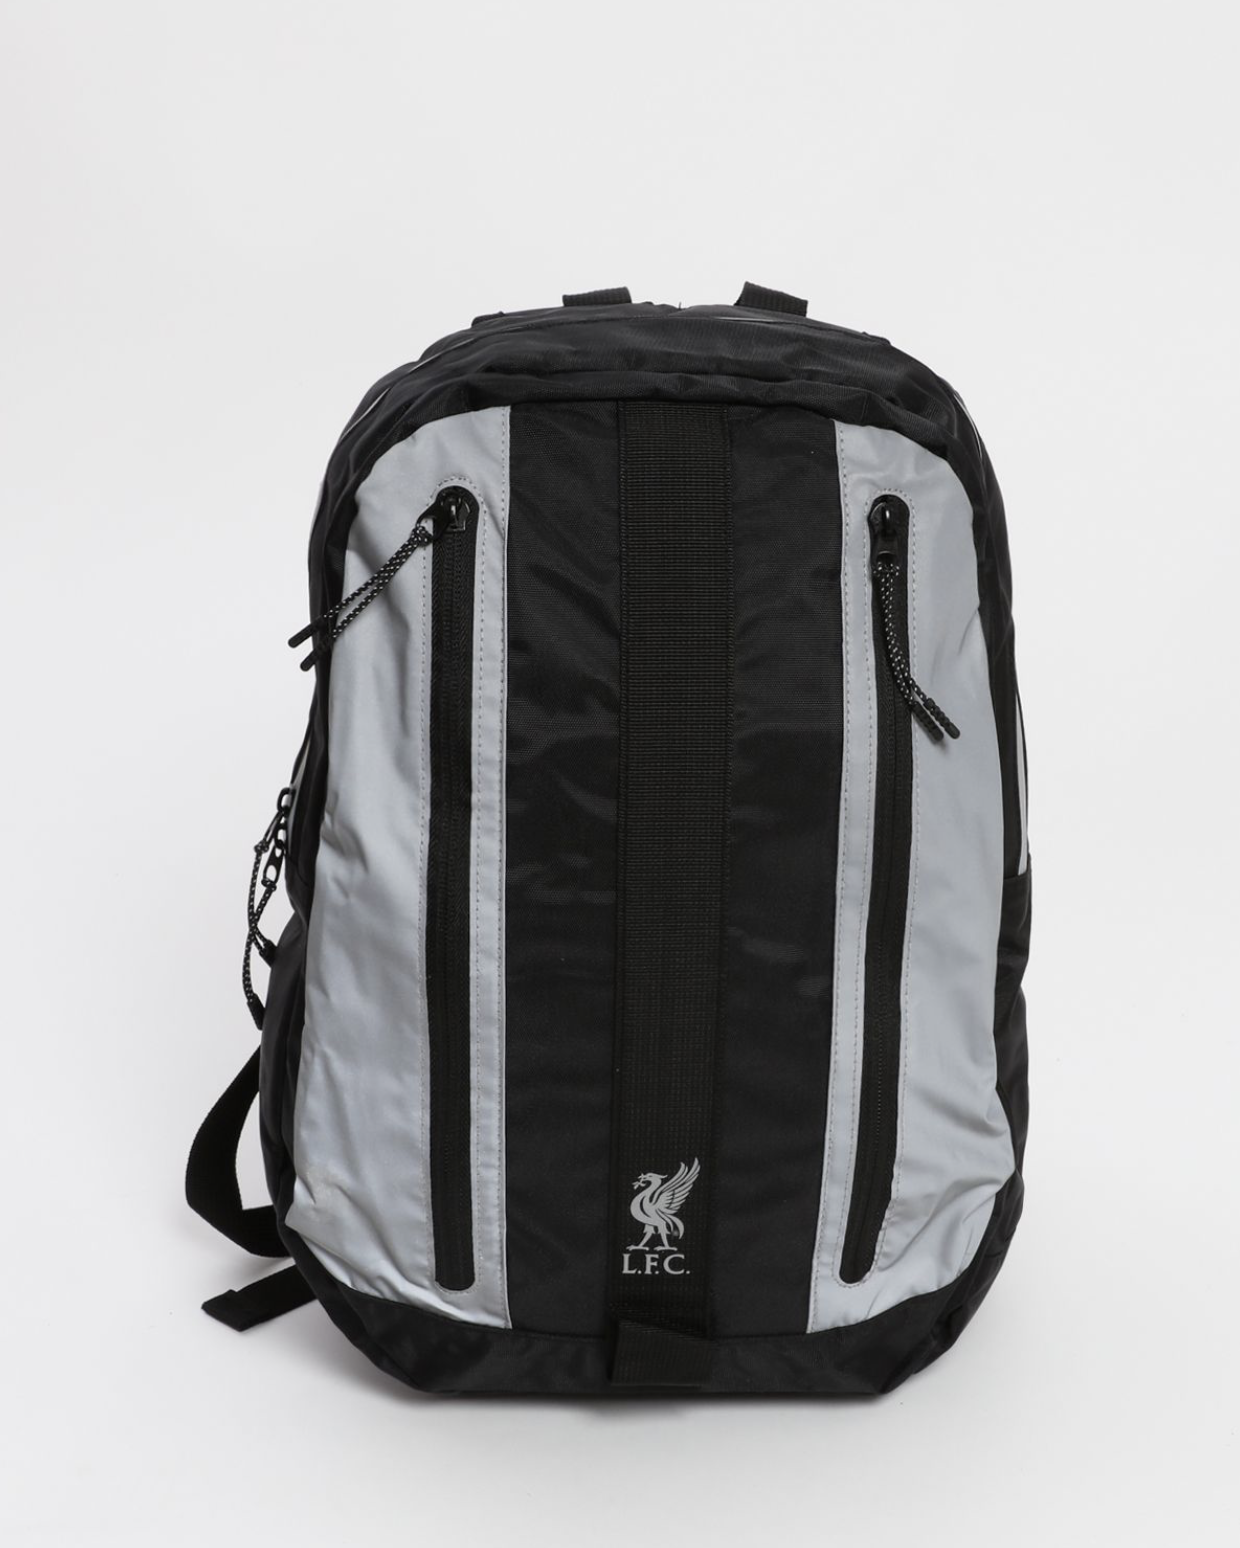 LFC Black/Silver Backpack